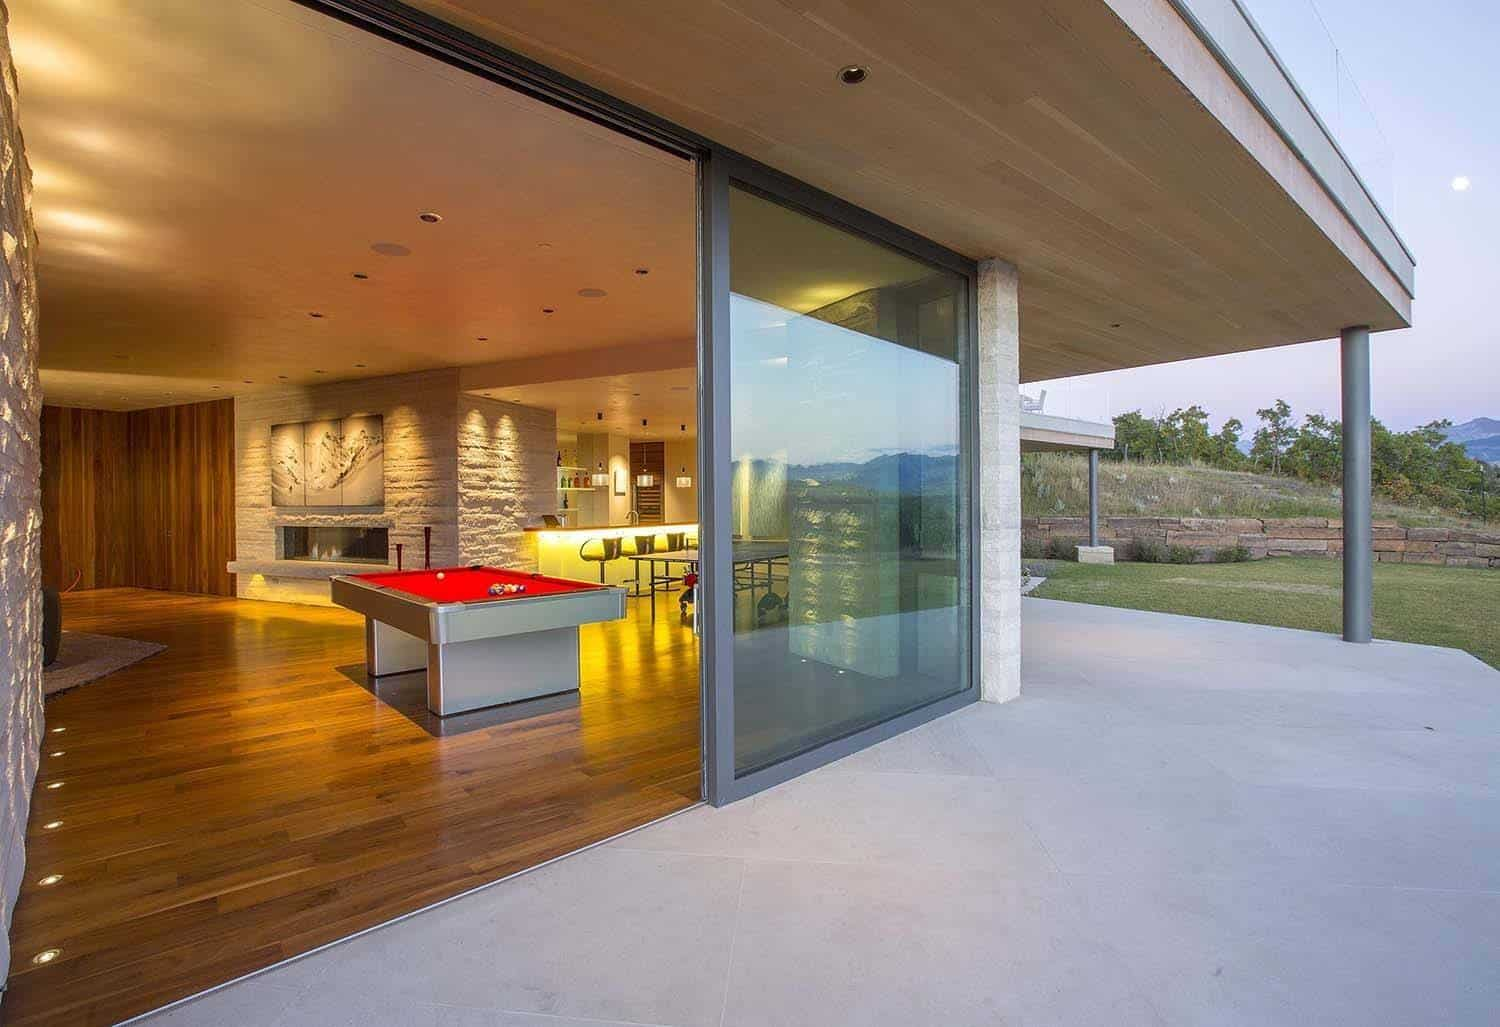 Modern-Residence-Colorado-Poss Architecture-42-1 Kindesign